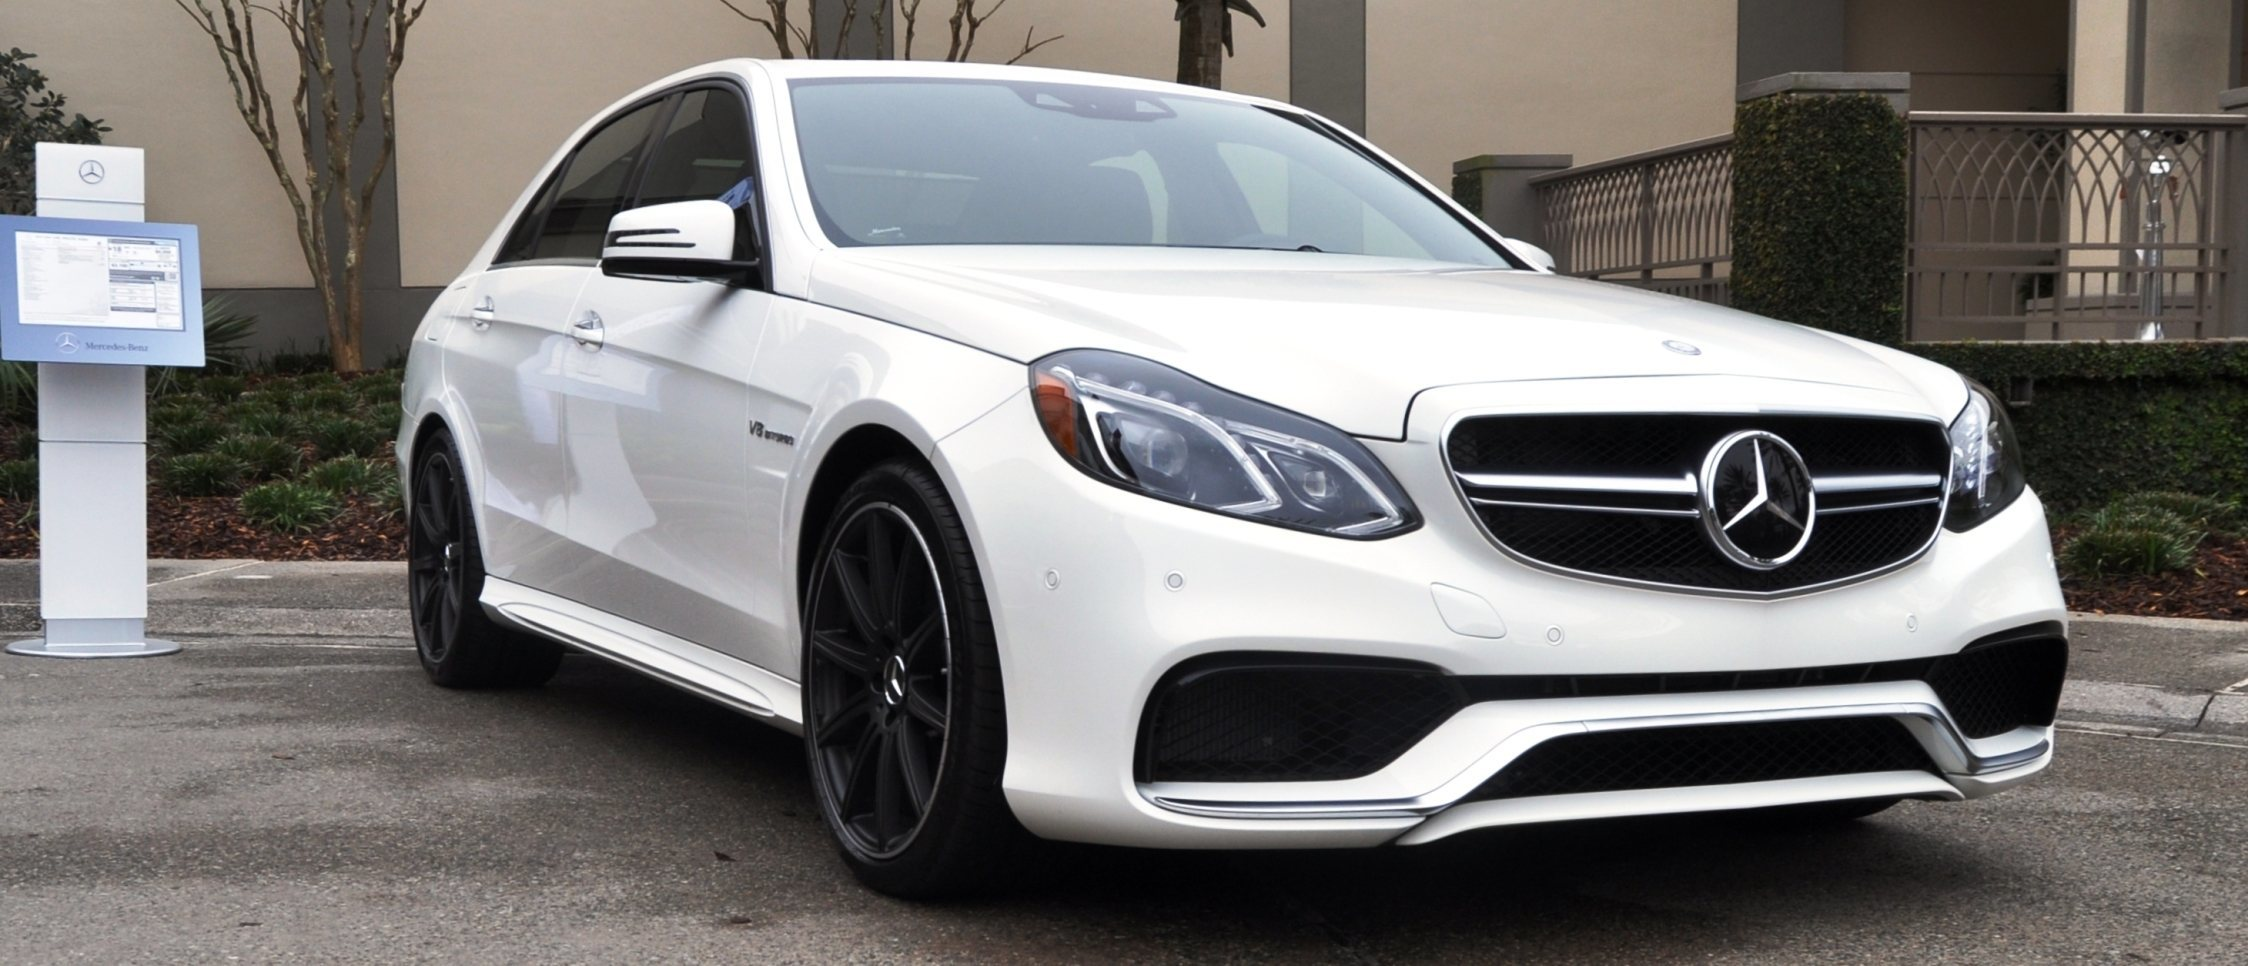 The White Knight 2014 Mercedes Benz E63 AMG 4Matic S Model